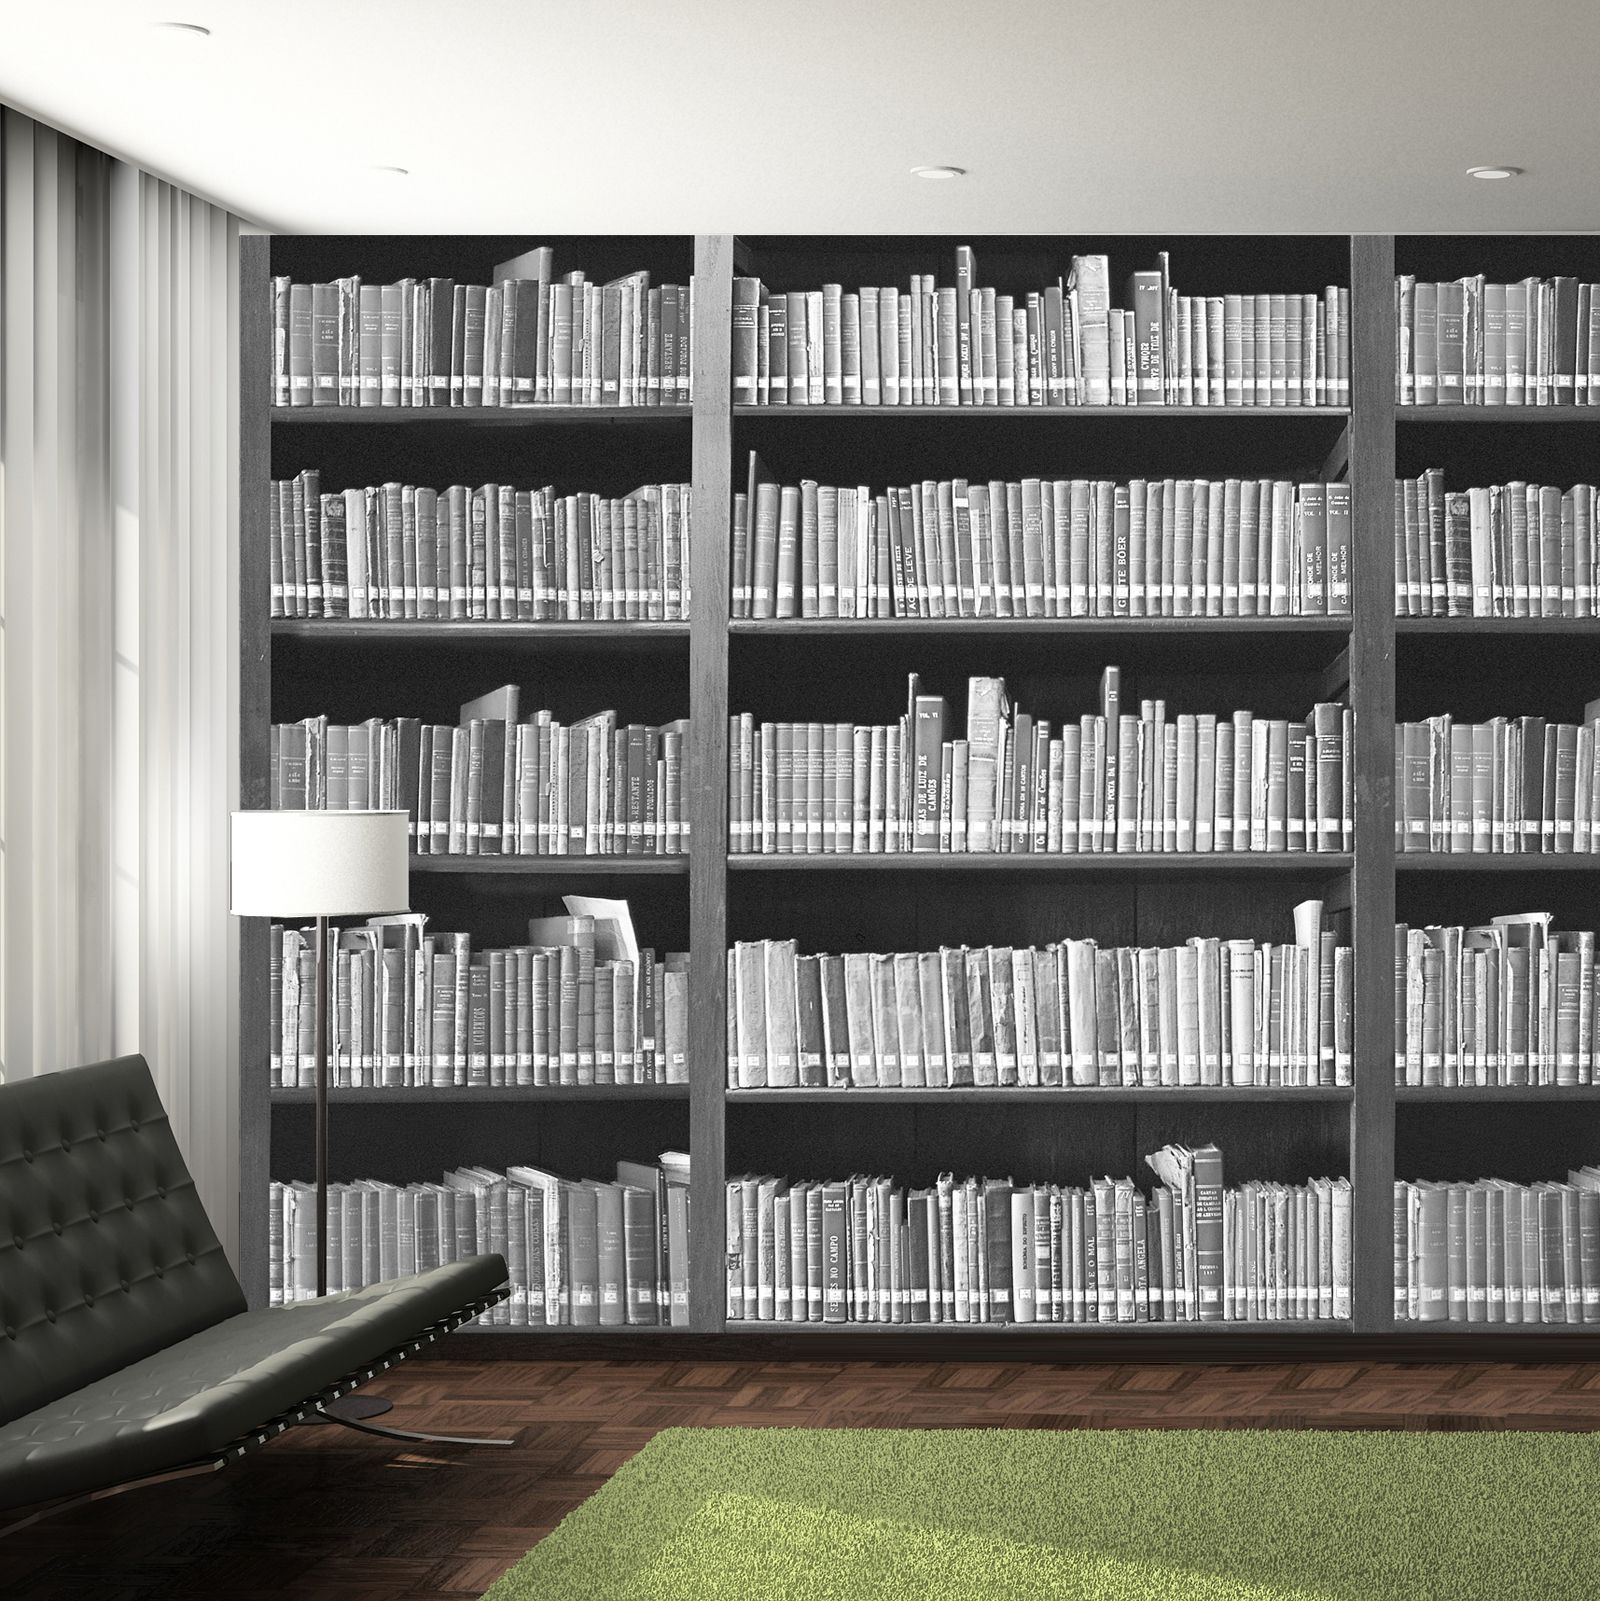 Déco Murale Diy Details About Bookshelf Library Grey Wallpaper Wall Mural 2 32cm X 315cm New